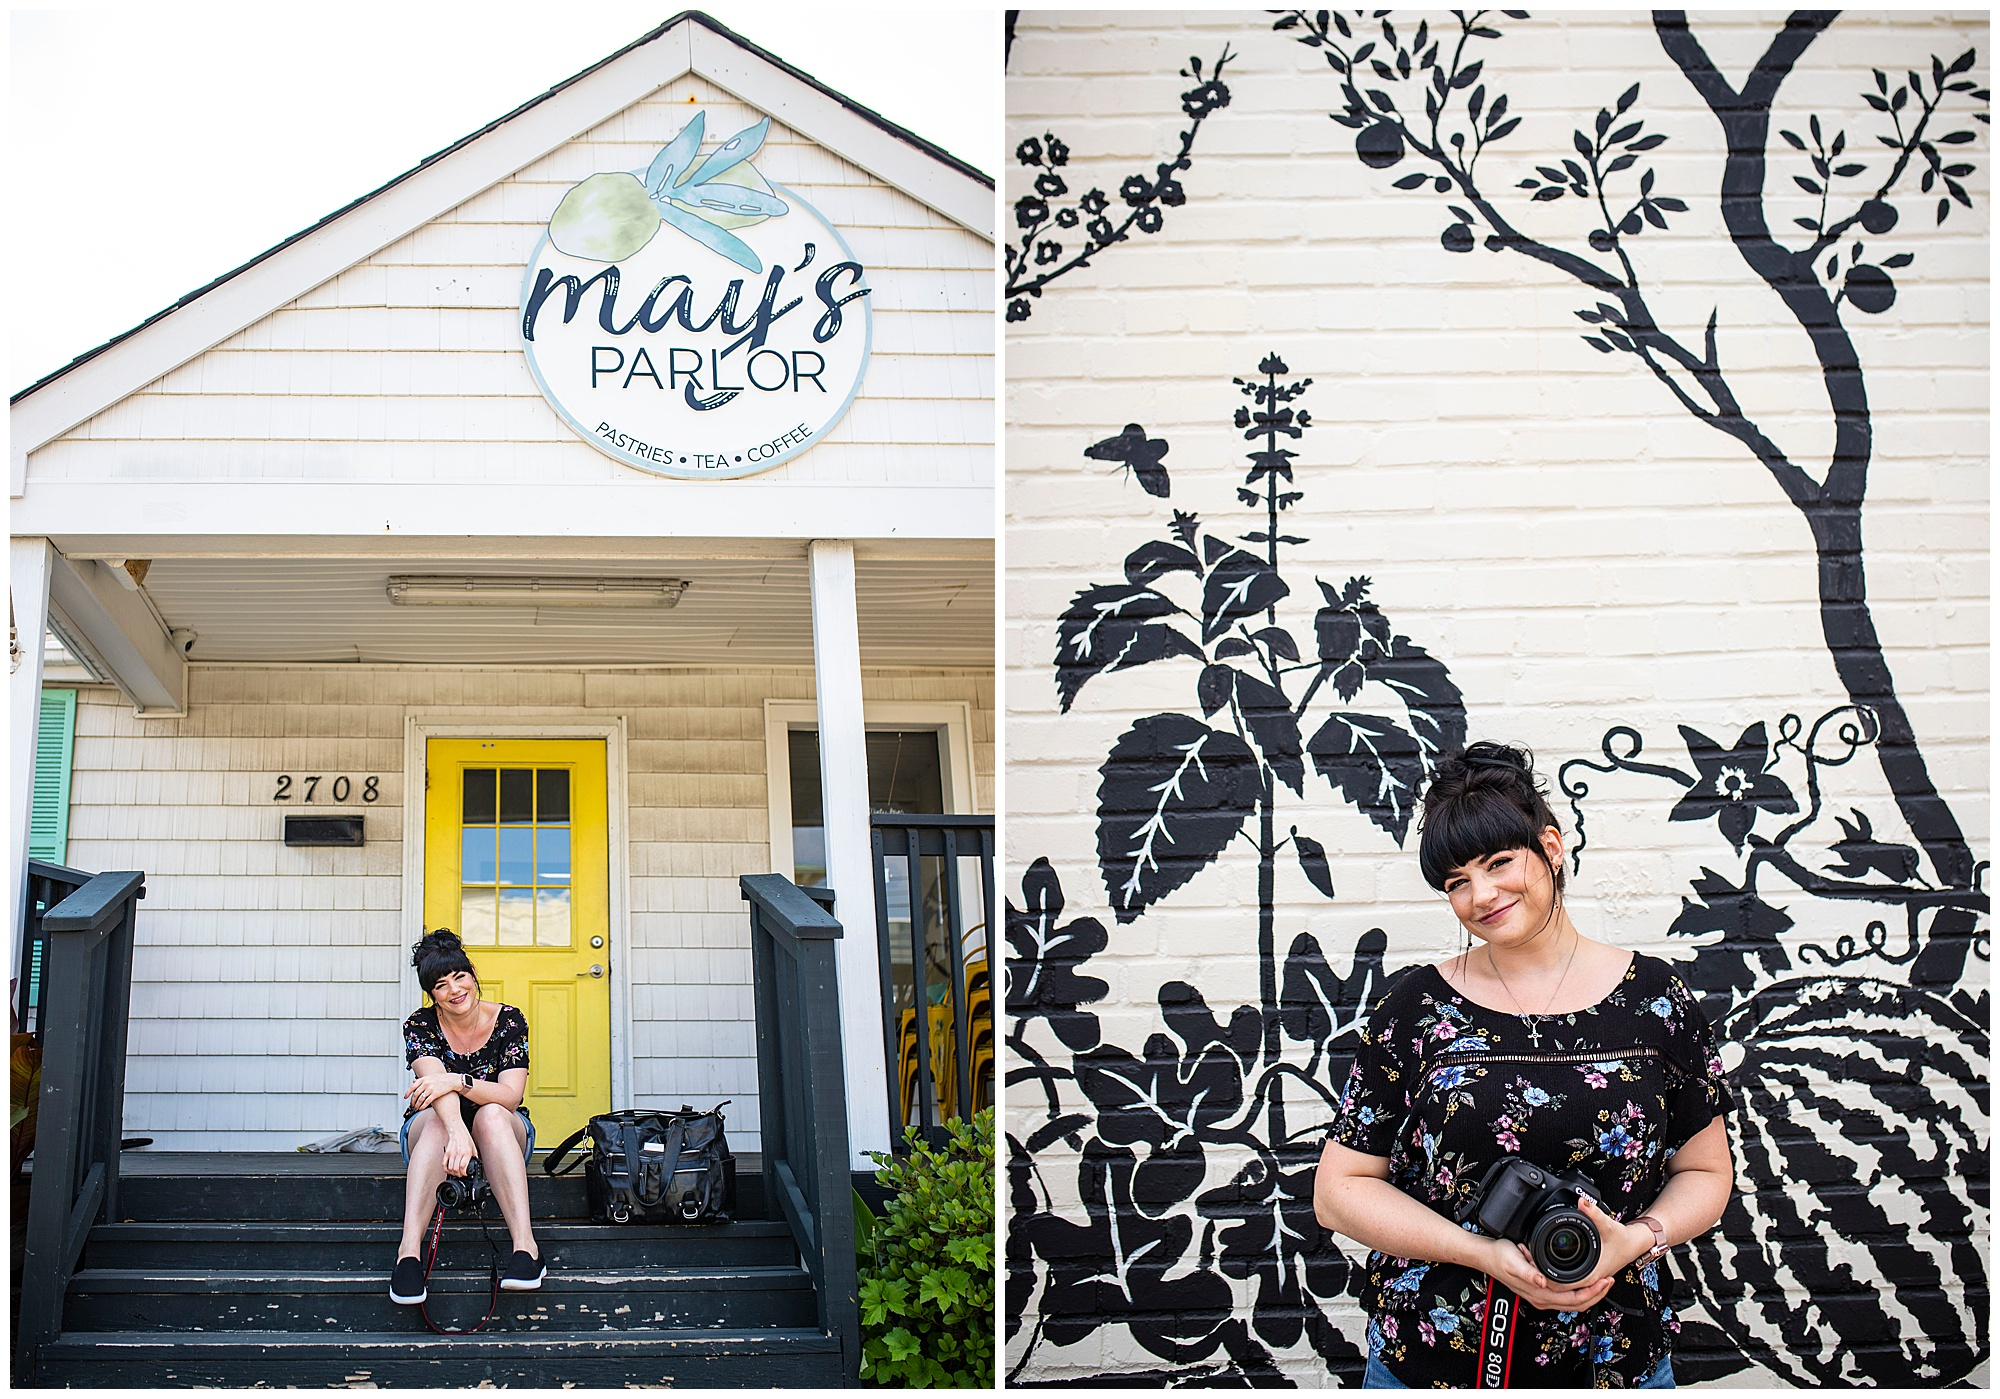 misty saves the day, tashena shaw photography, virginia beach content curator, virginia beach content photography, may's parlor